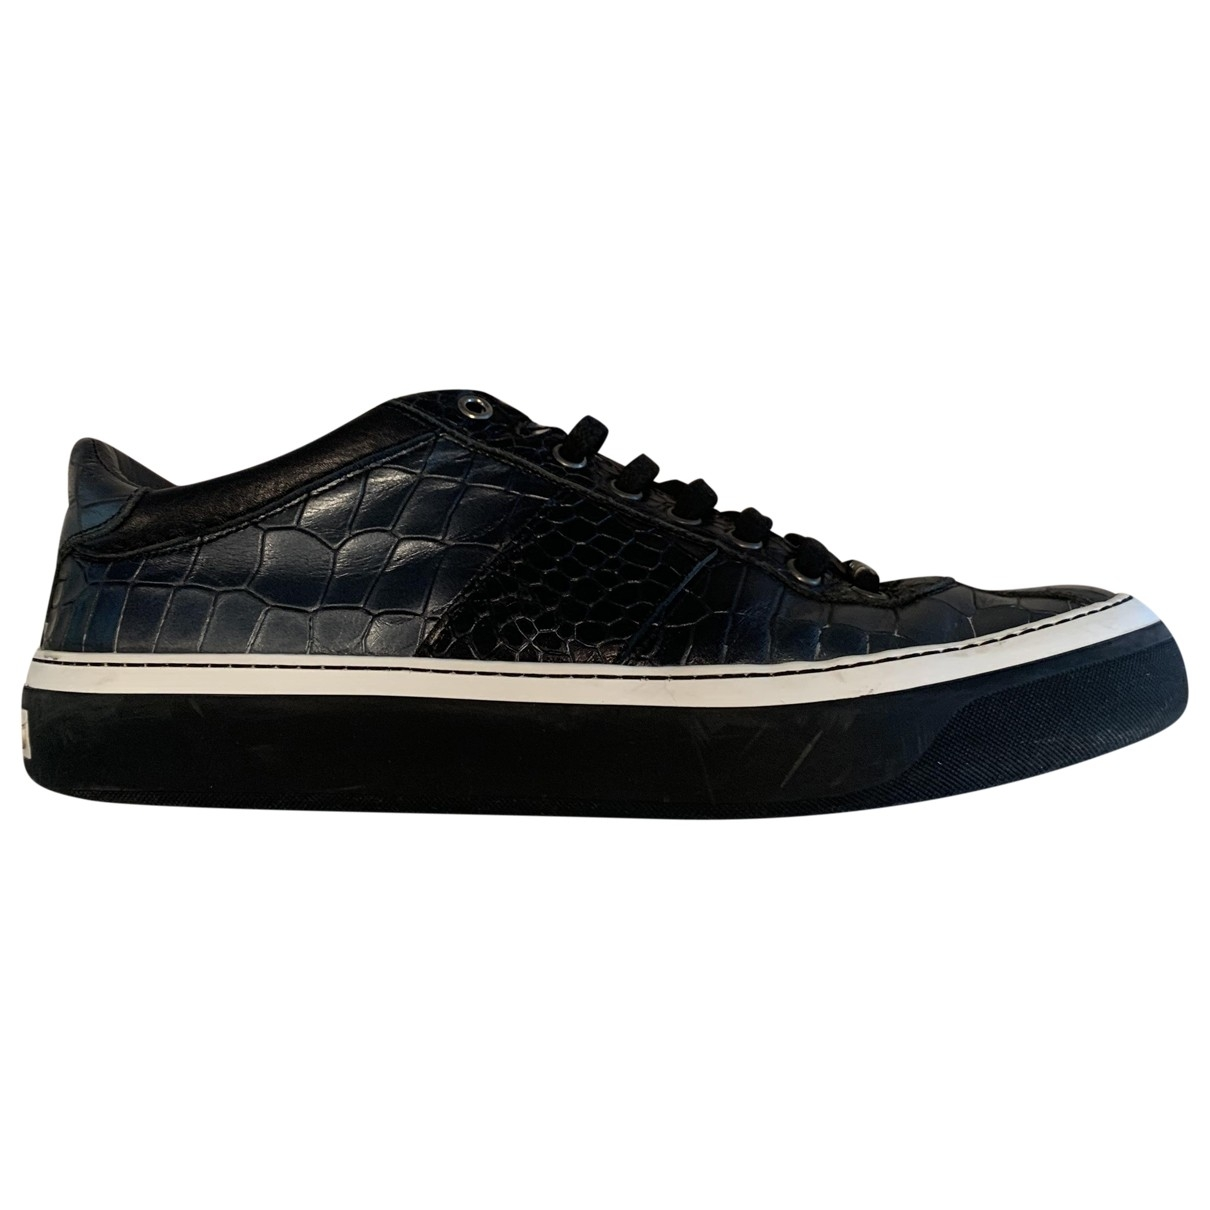 Jimmy Choo \N Sneakers in  Schwarz Leder